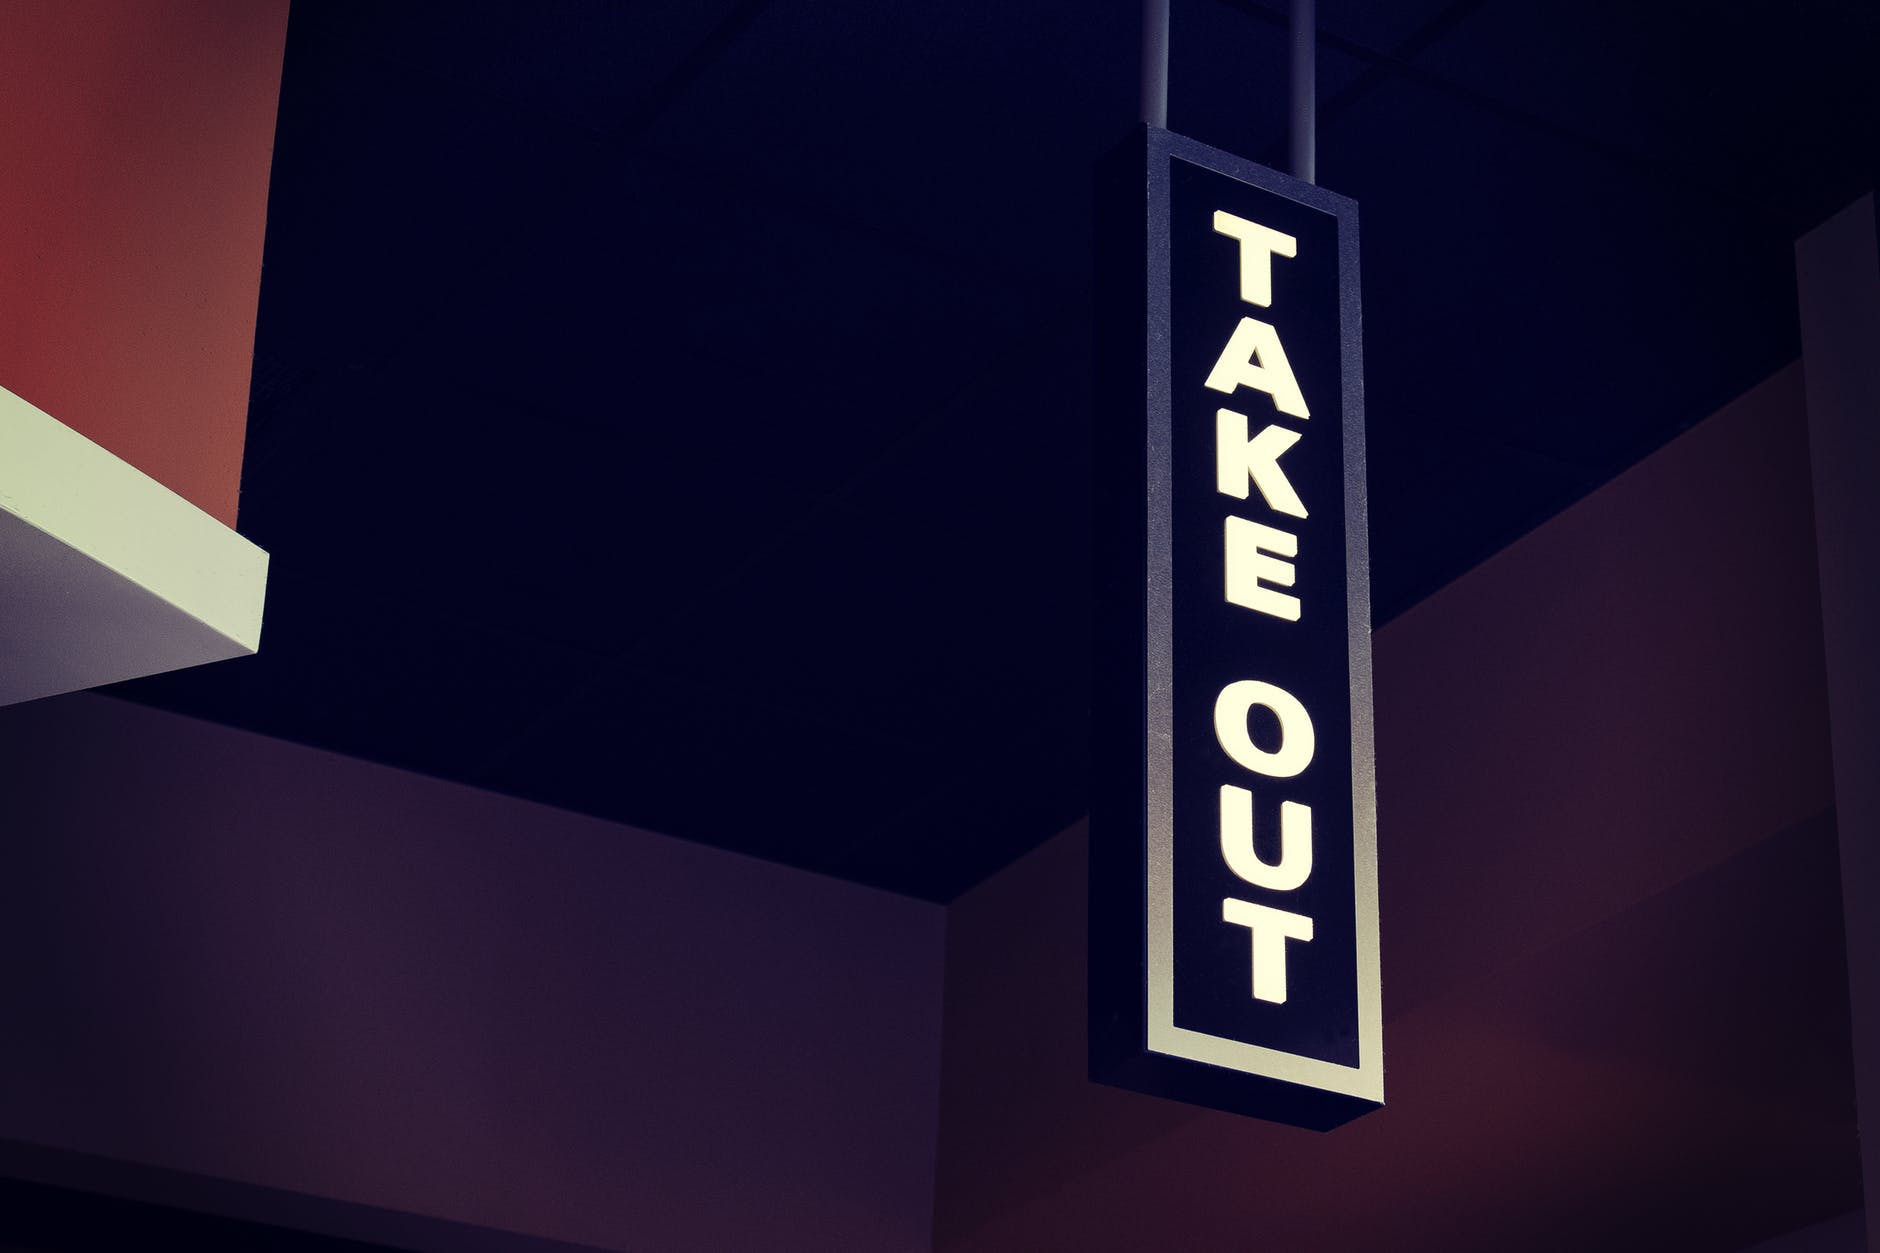 White LED take out signage hanging | Photo by Tim Mossholder | Pexels.com